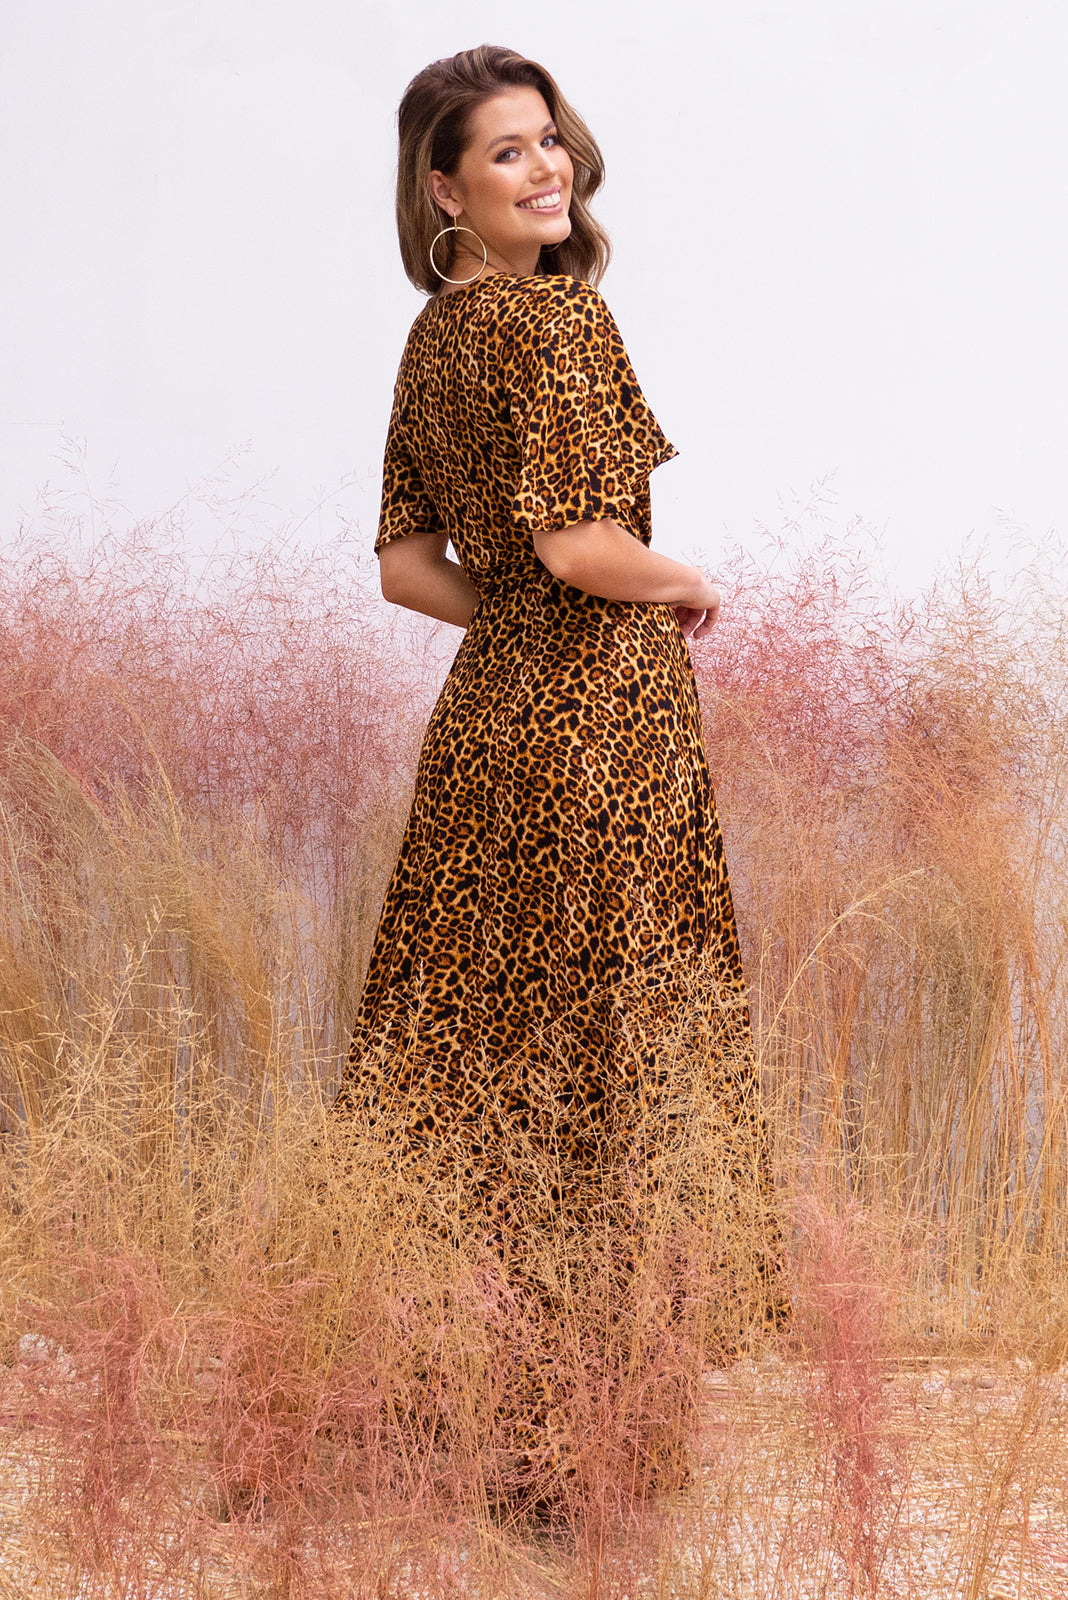 Cinnamon Wild Things Maxi Wrap Dress bohemian inspired safari vibe dress featuring petal sleeves, wrap around waist, waterfall hemline in a woven crinkle textured 100% rayon fabric bold strong leopard skin print.